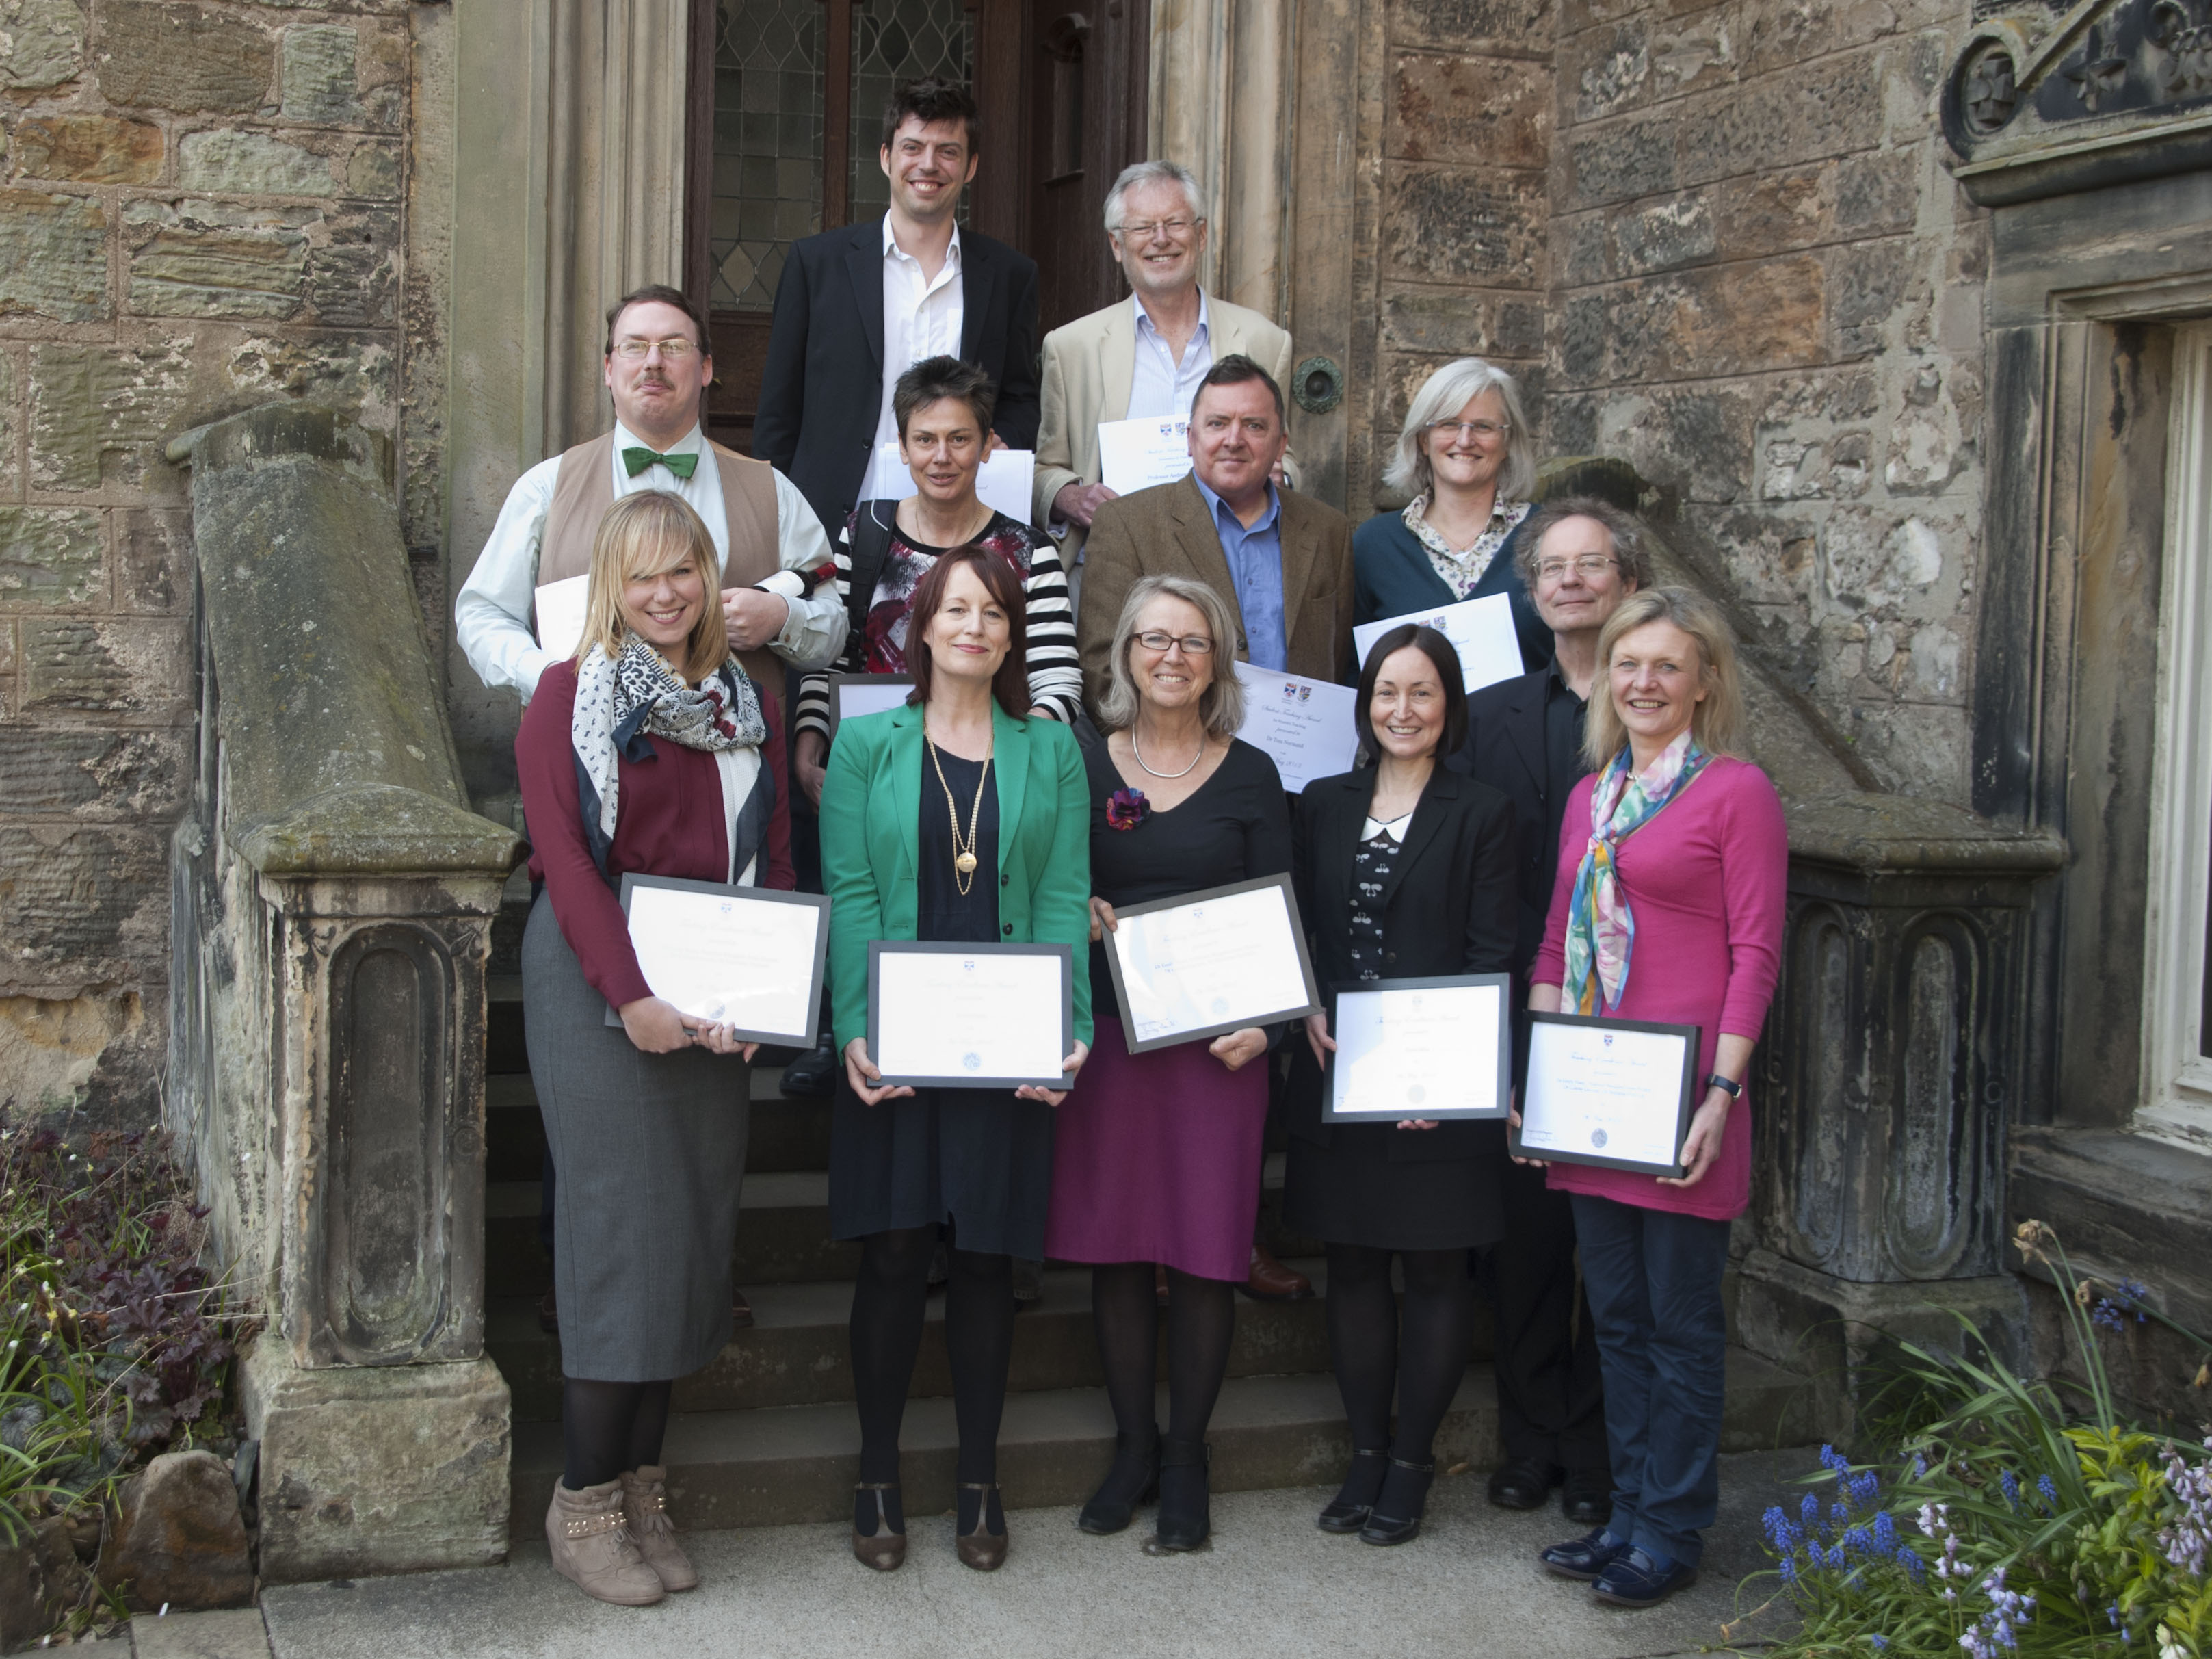 Winners of 2012-13 Students' Association Teaching Awards